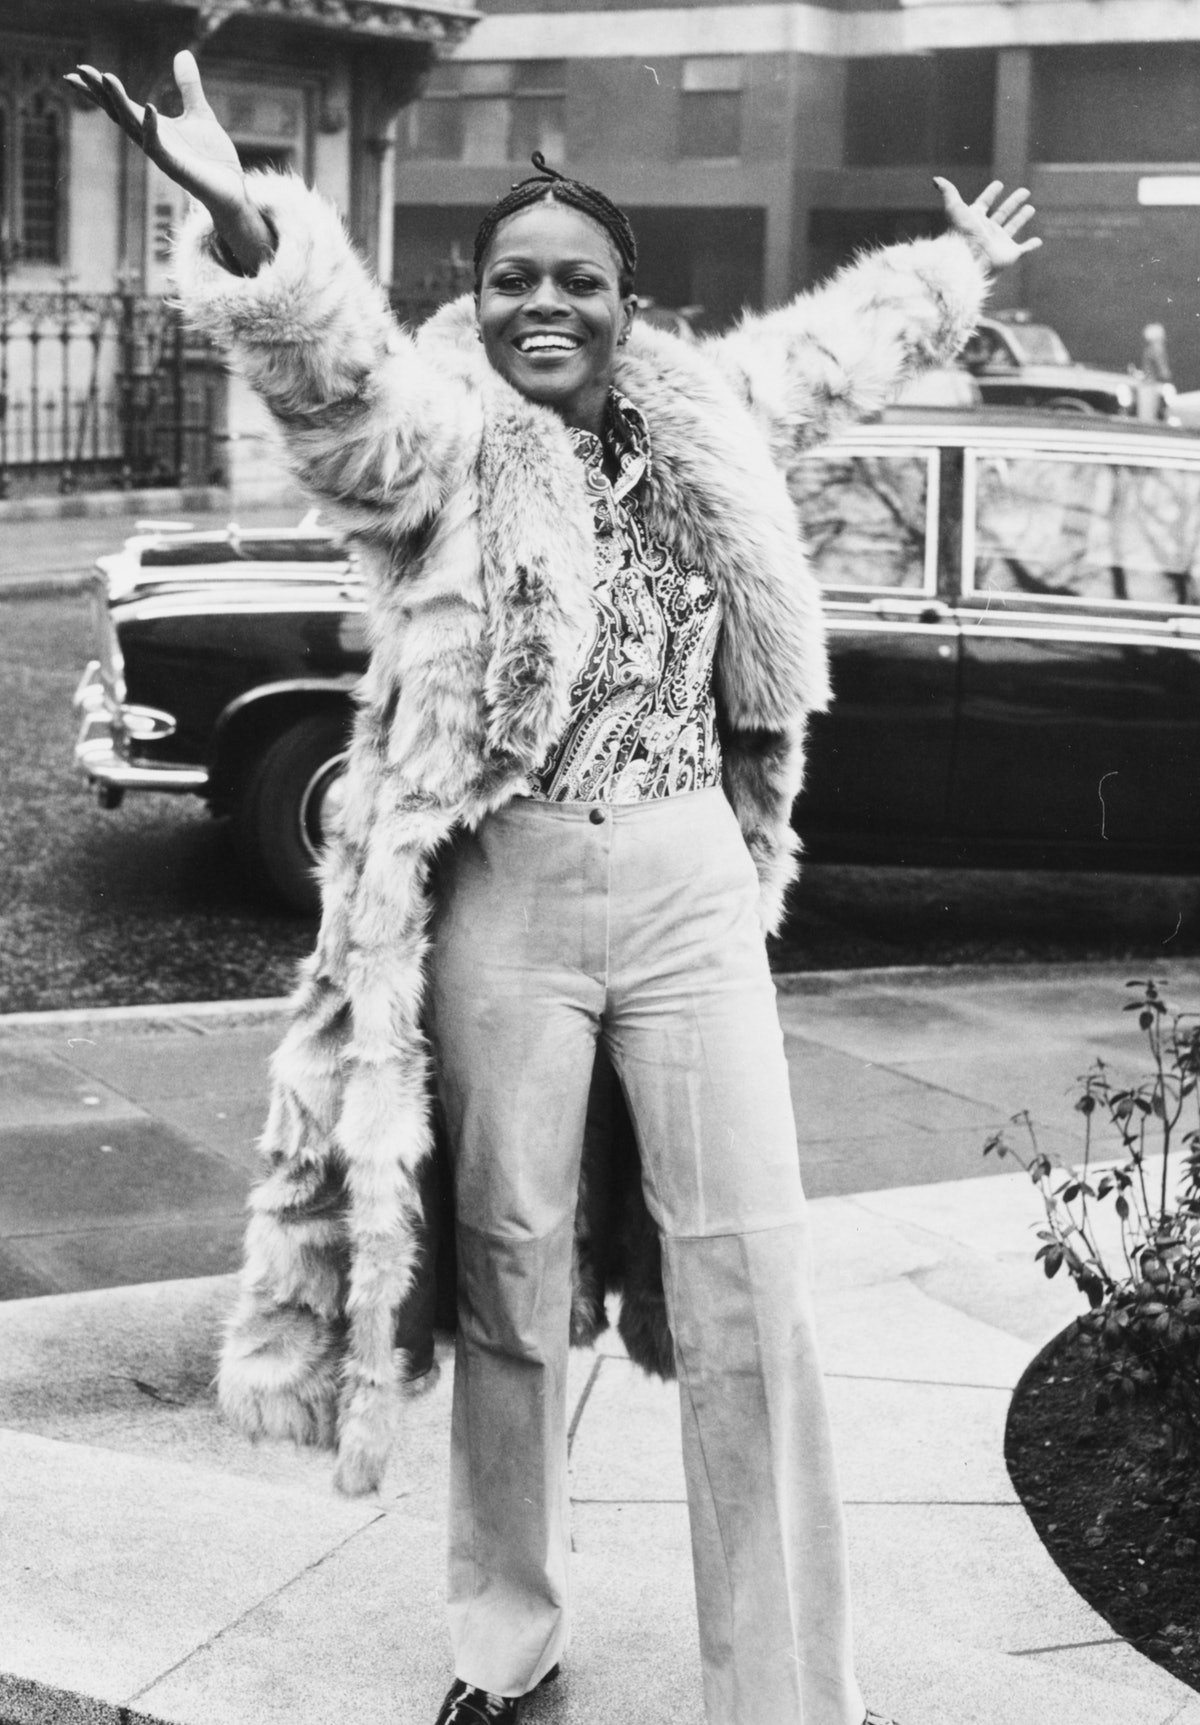 cicely tyson with arms outstretched